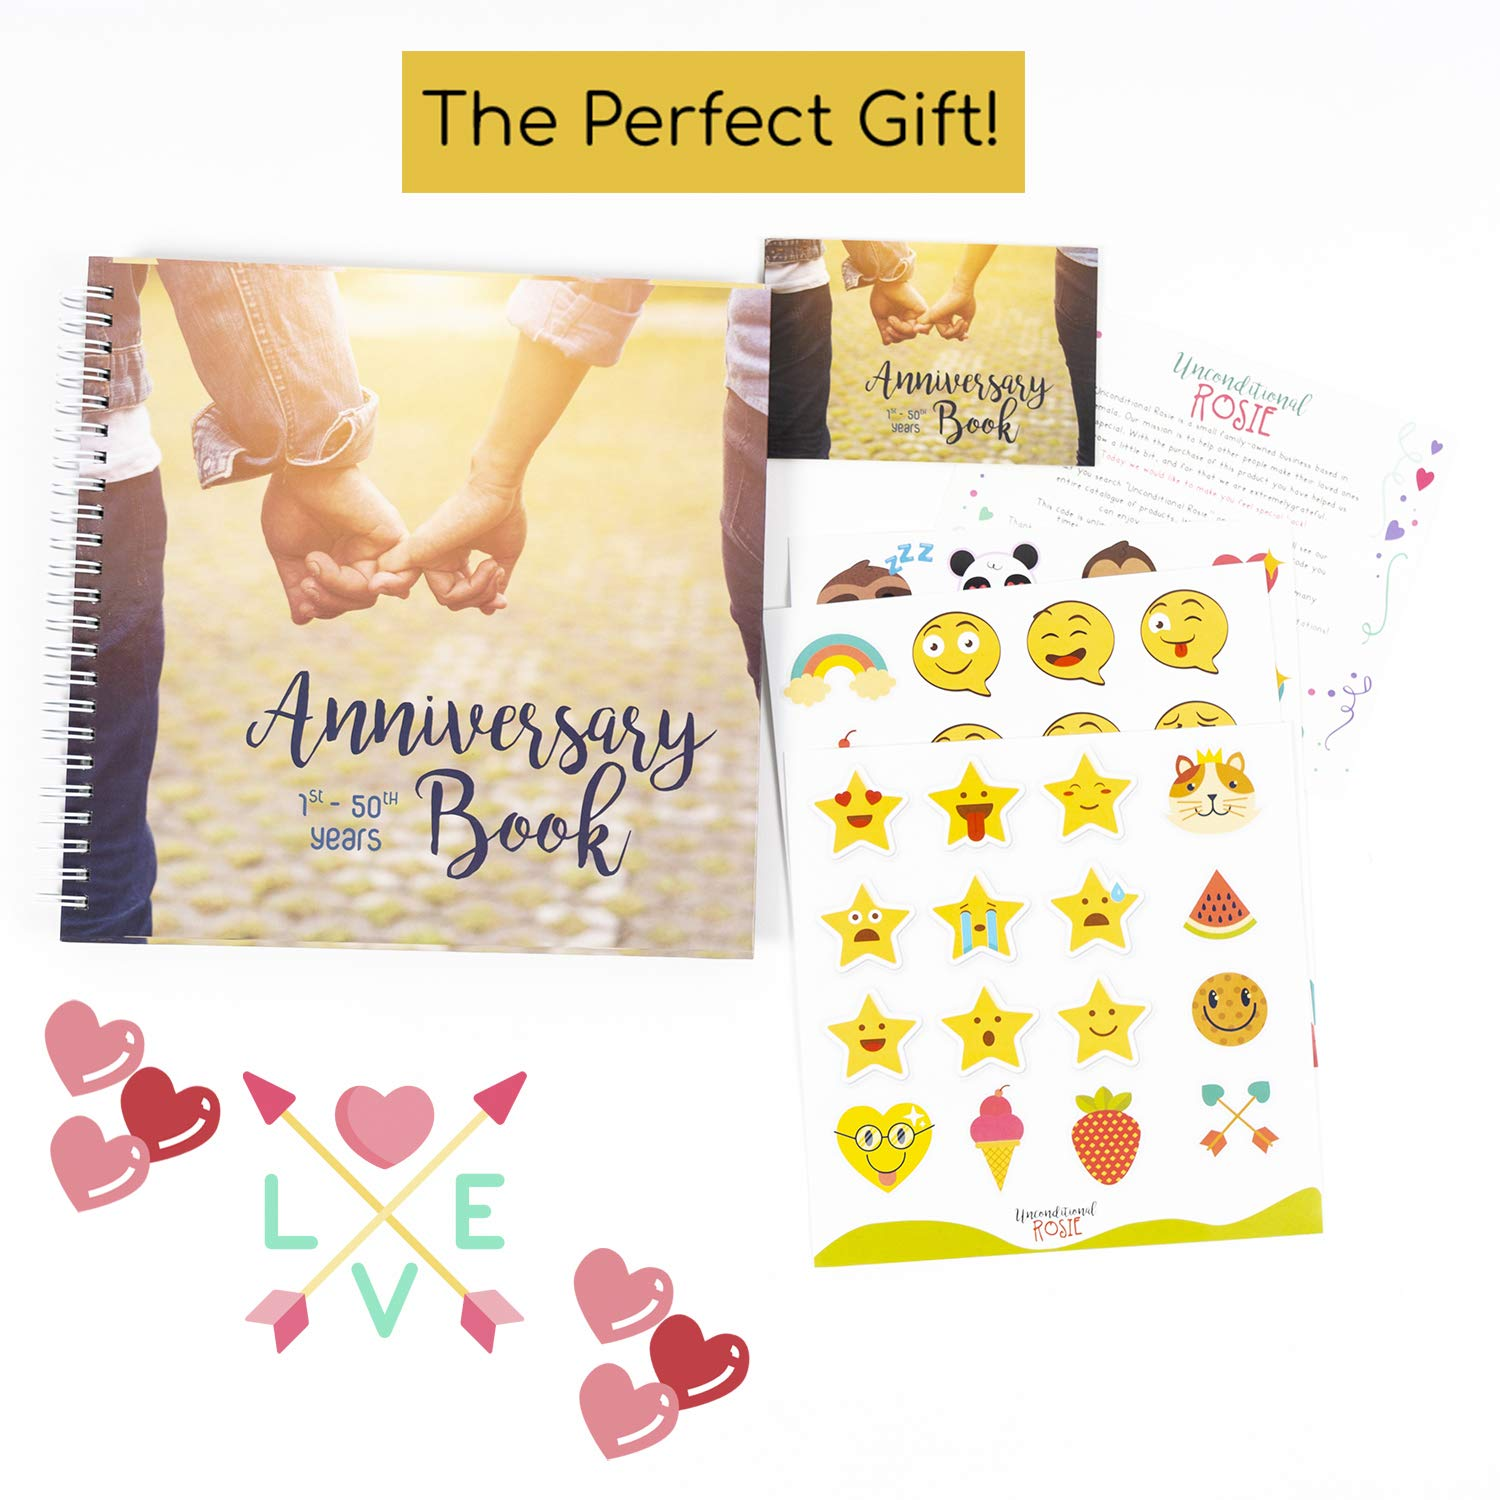 A Hardcover Journal To Document Anniversaries From The 1st To the 50th Year Personalized Marriage Presents For Husband /& Wife. Wedding Anniversary Memory Book Unique Couple Gifts For Him /& Her